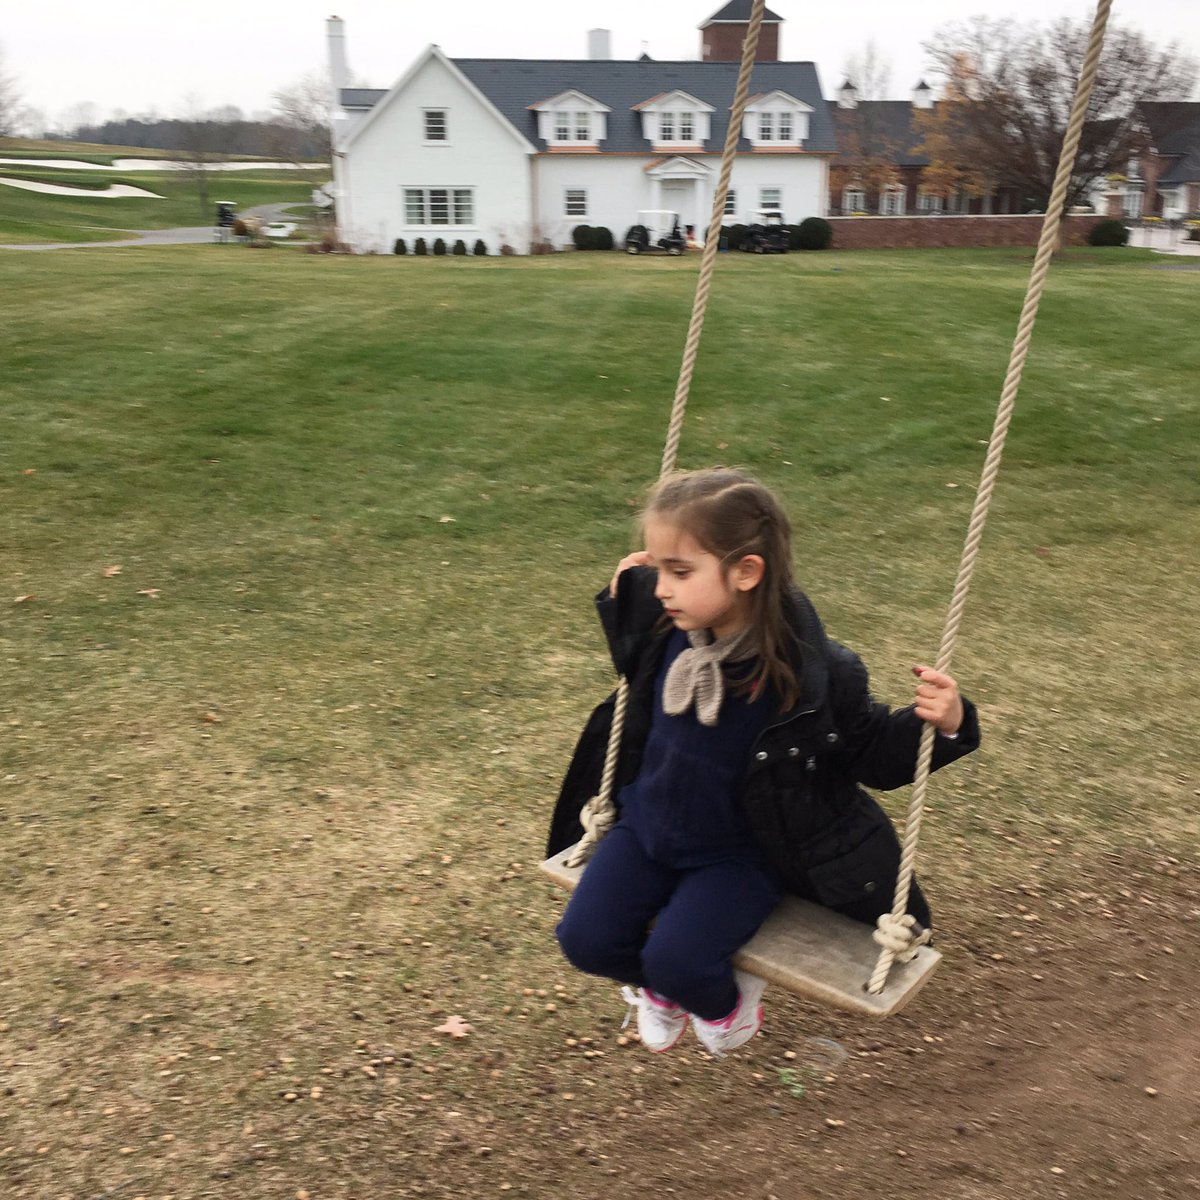 Swinging into the weekend #thanksgiving